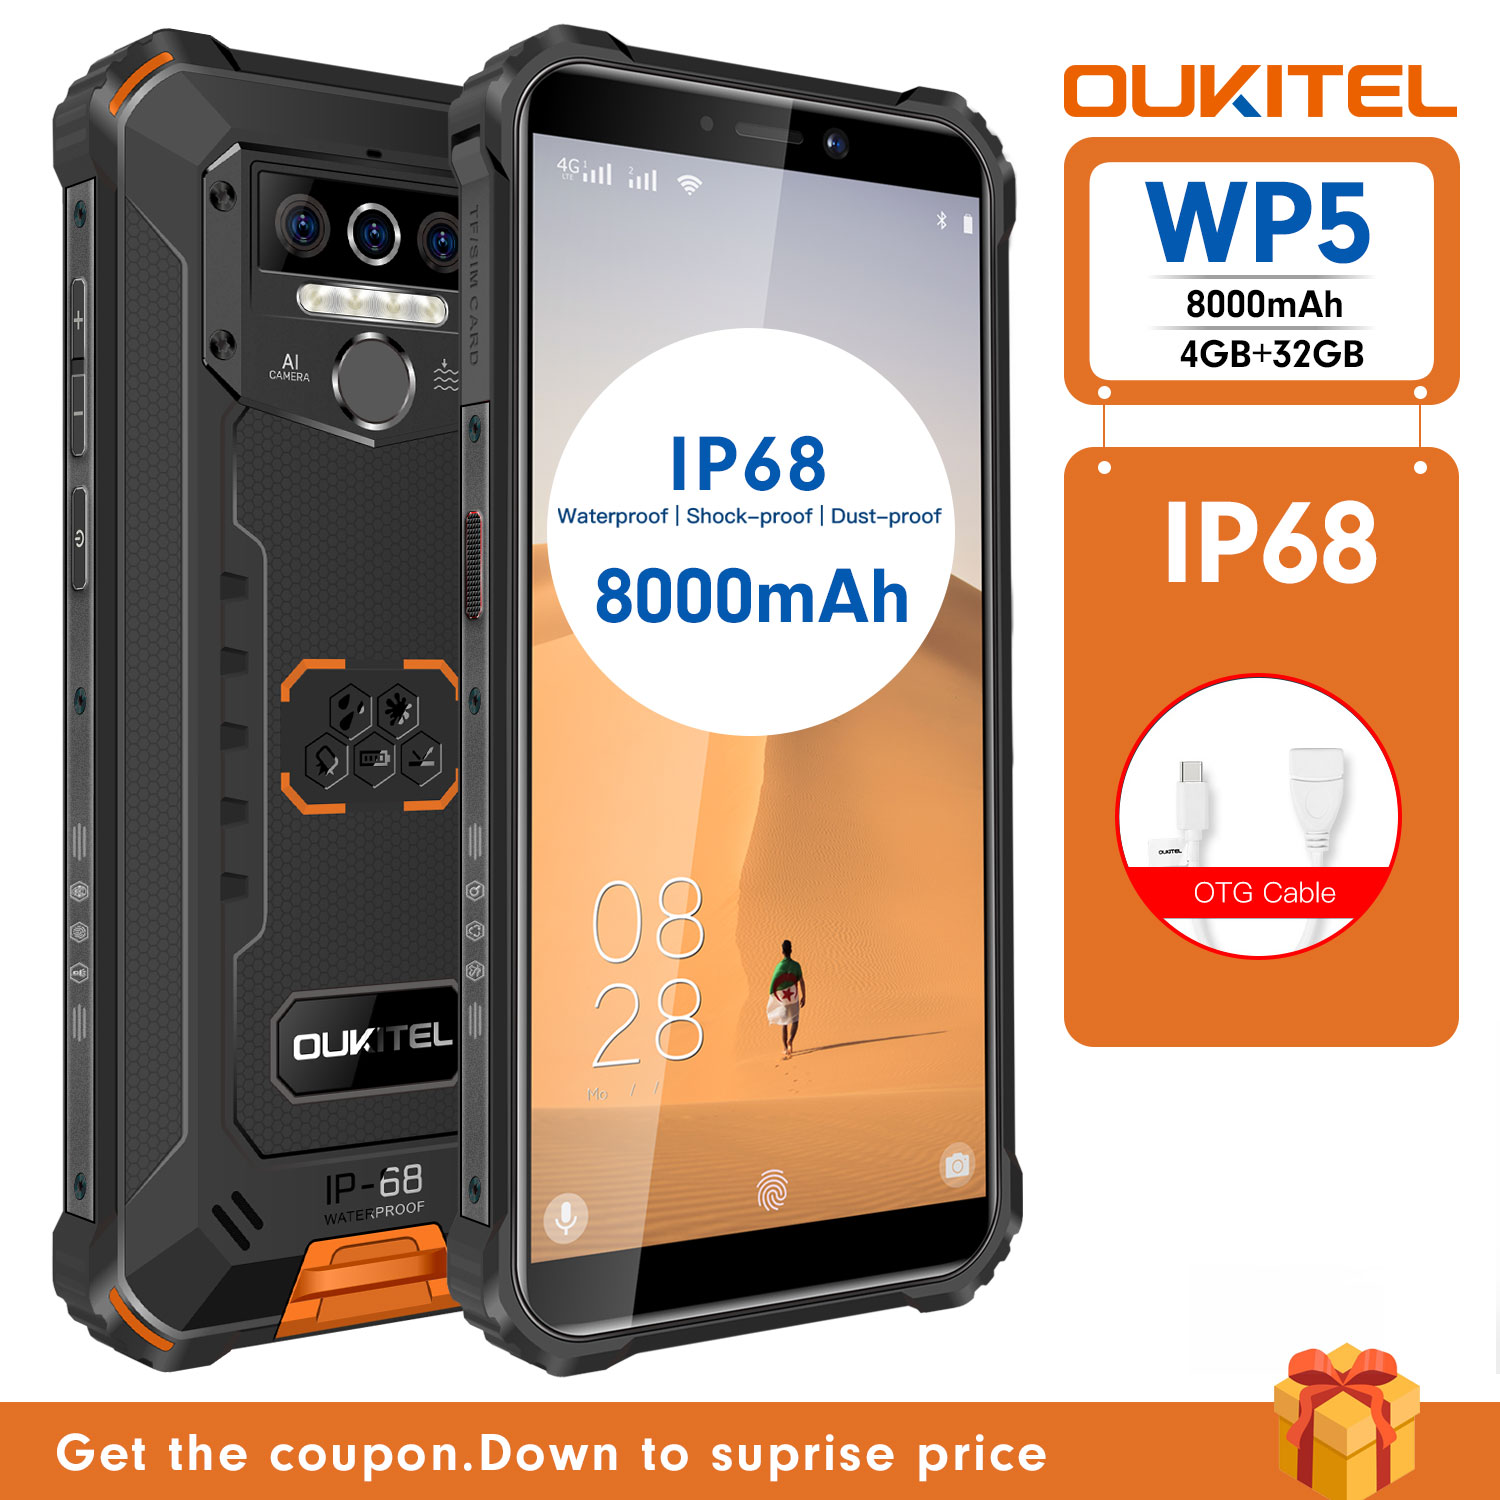 OUKITEL WP5 IP68 Waterproof Smartphone 8000mAh Android 9.0 Triple Camera Face/Fingerprint ID 5.5 inches 4GB 32GB Mobile Phones